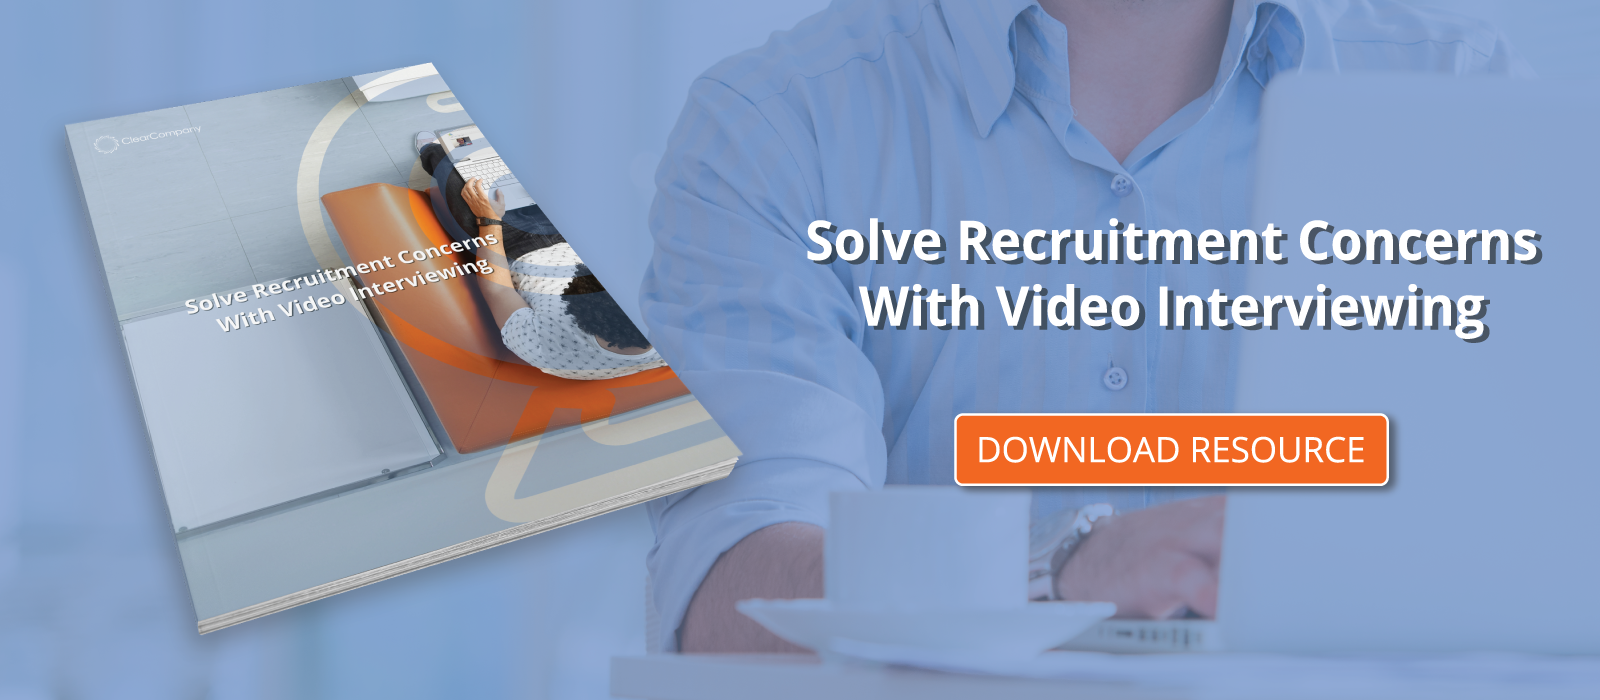 Solve Recruitment Concerns With Video Interviewing